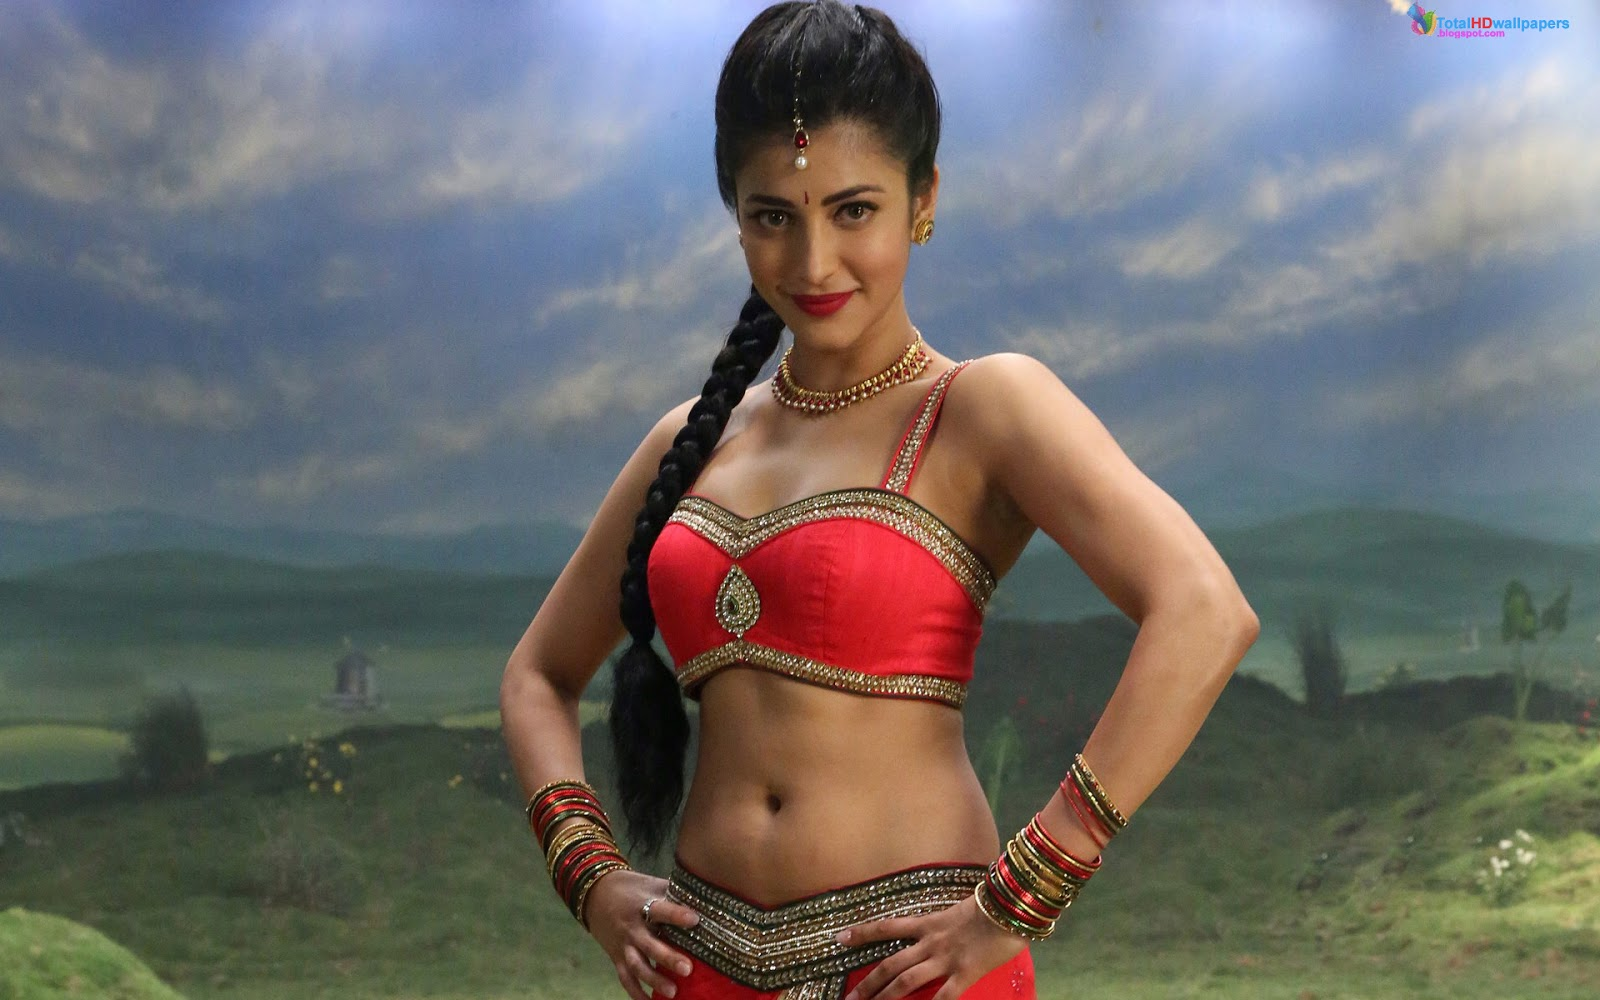 ... South indian Actress HD Wallpapers: Shruti Hassan HD Wallpapers